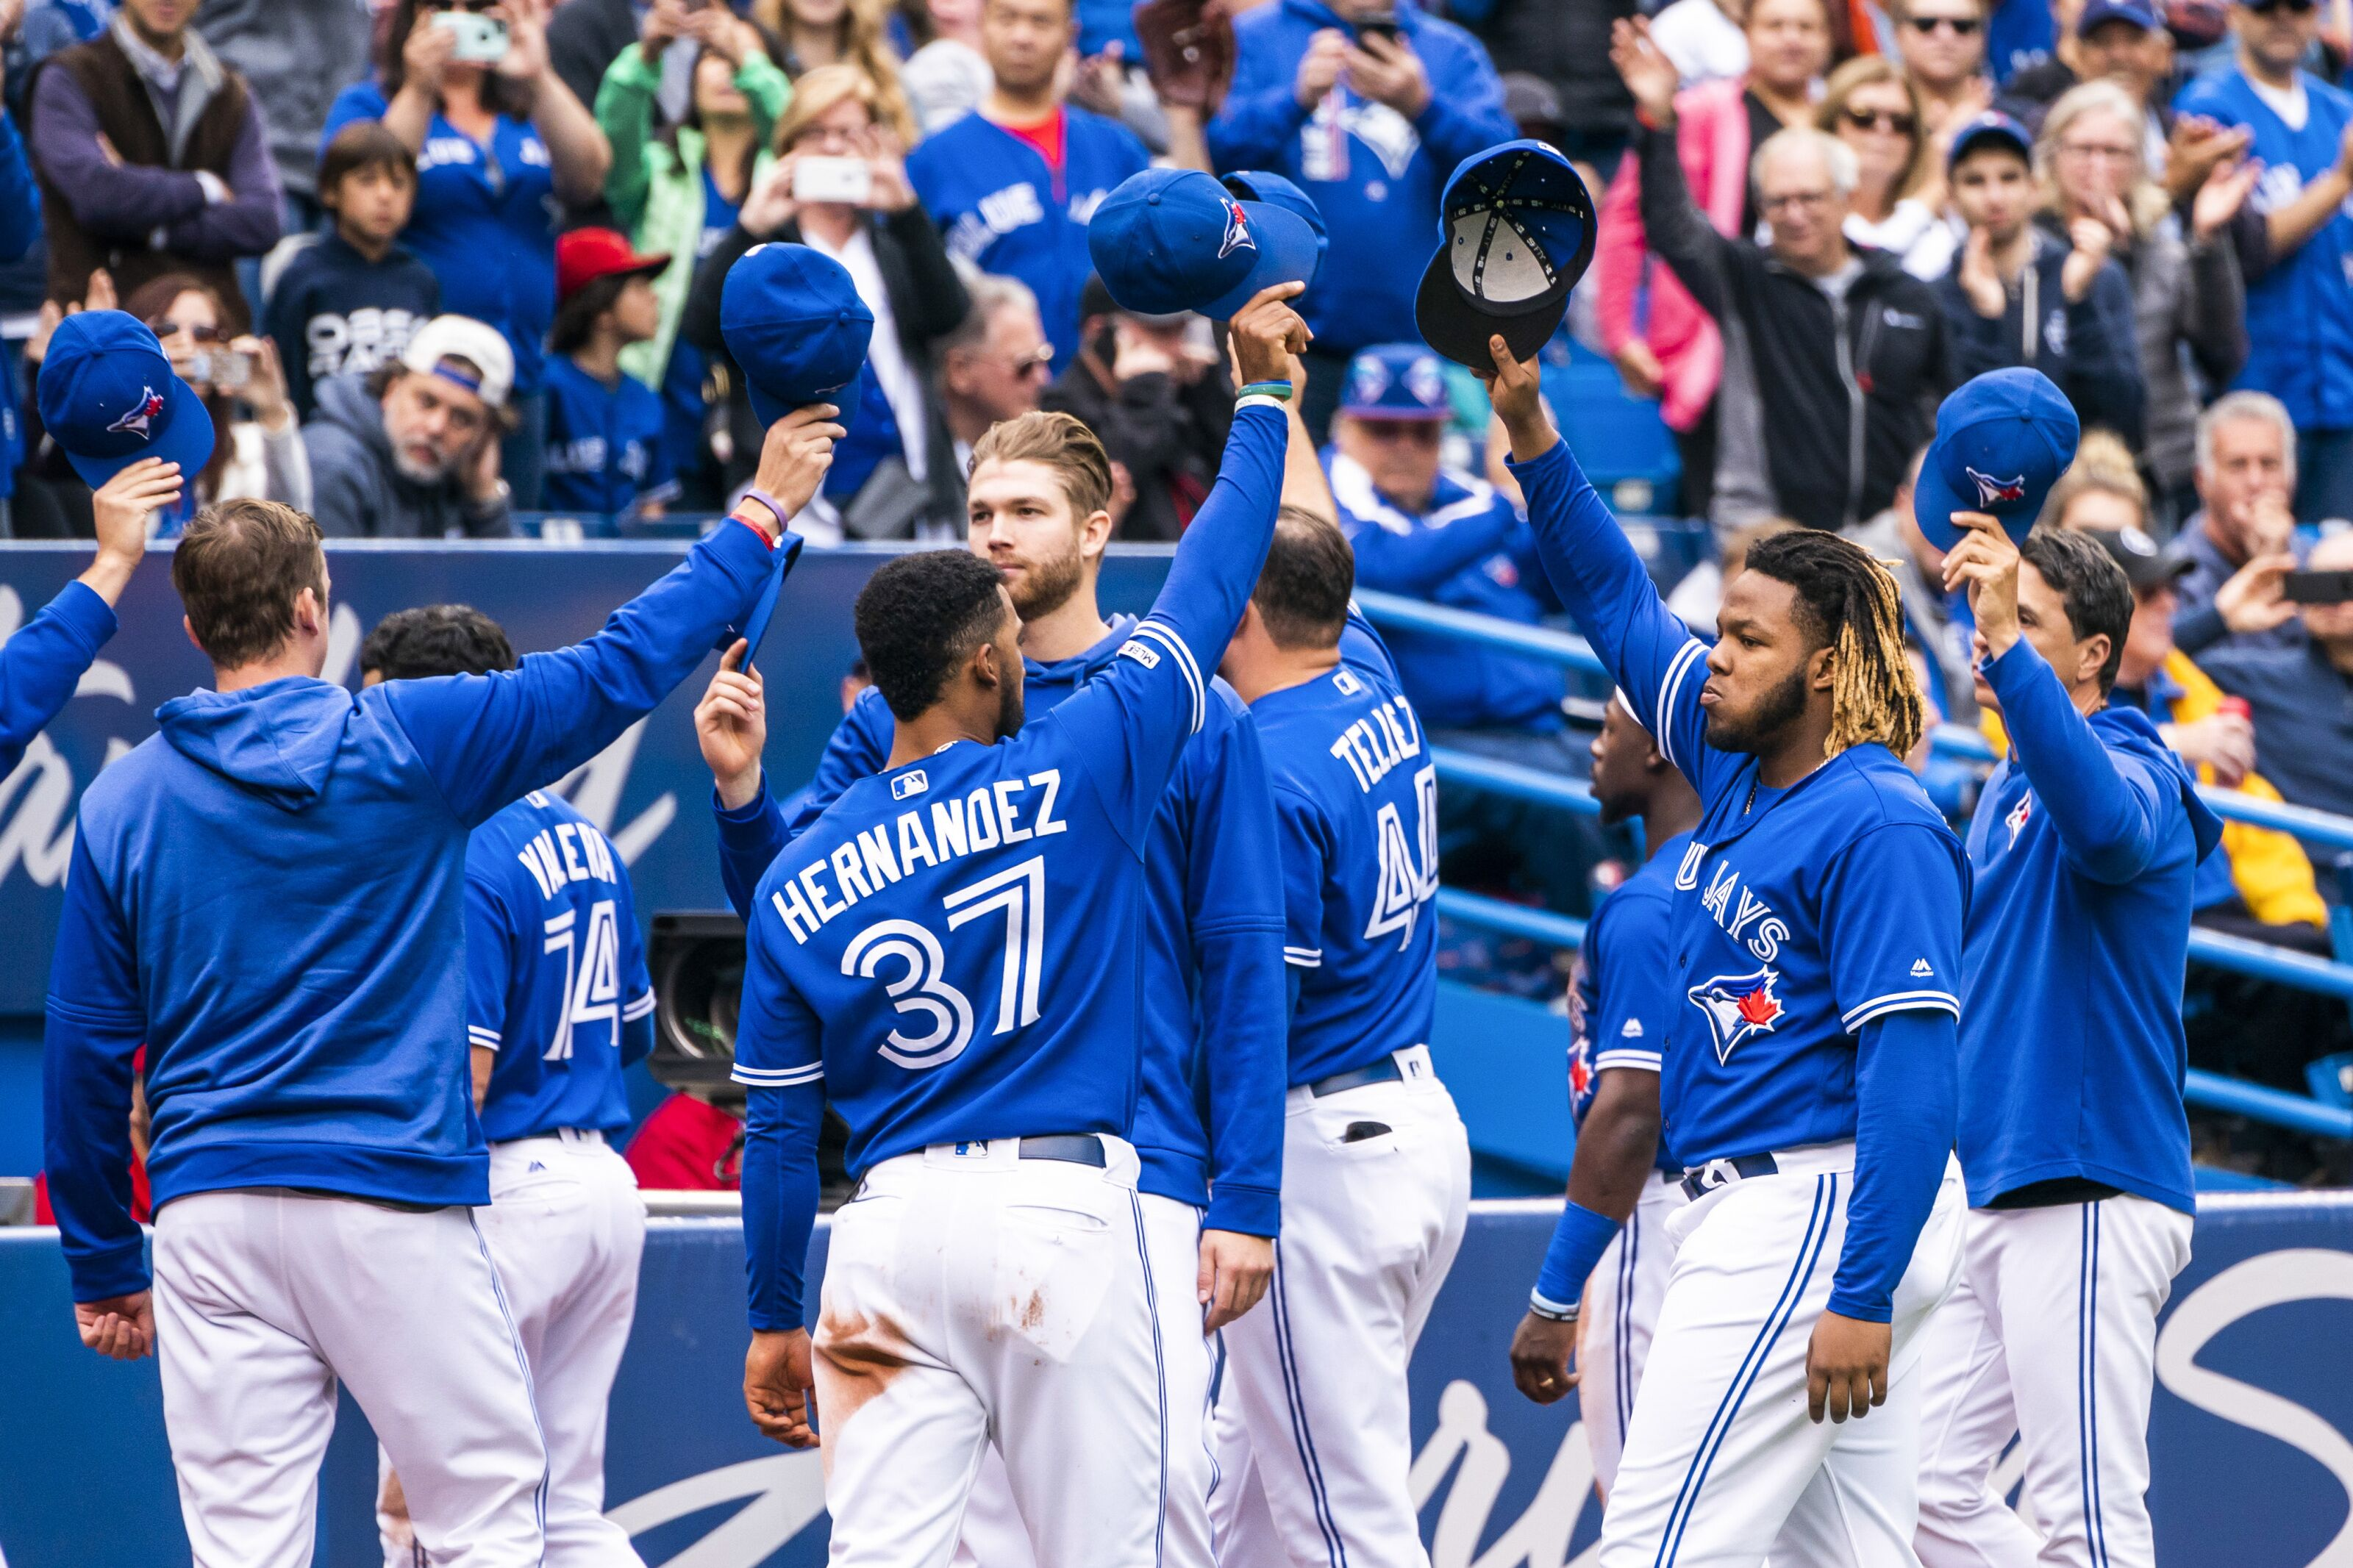 Toronto Blue Jays: Previewing the potential 2020 opening day roster